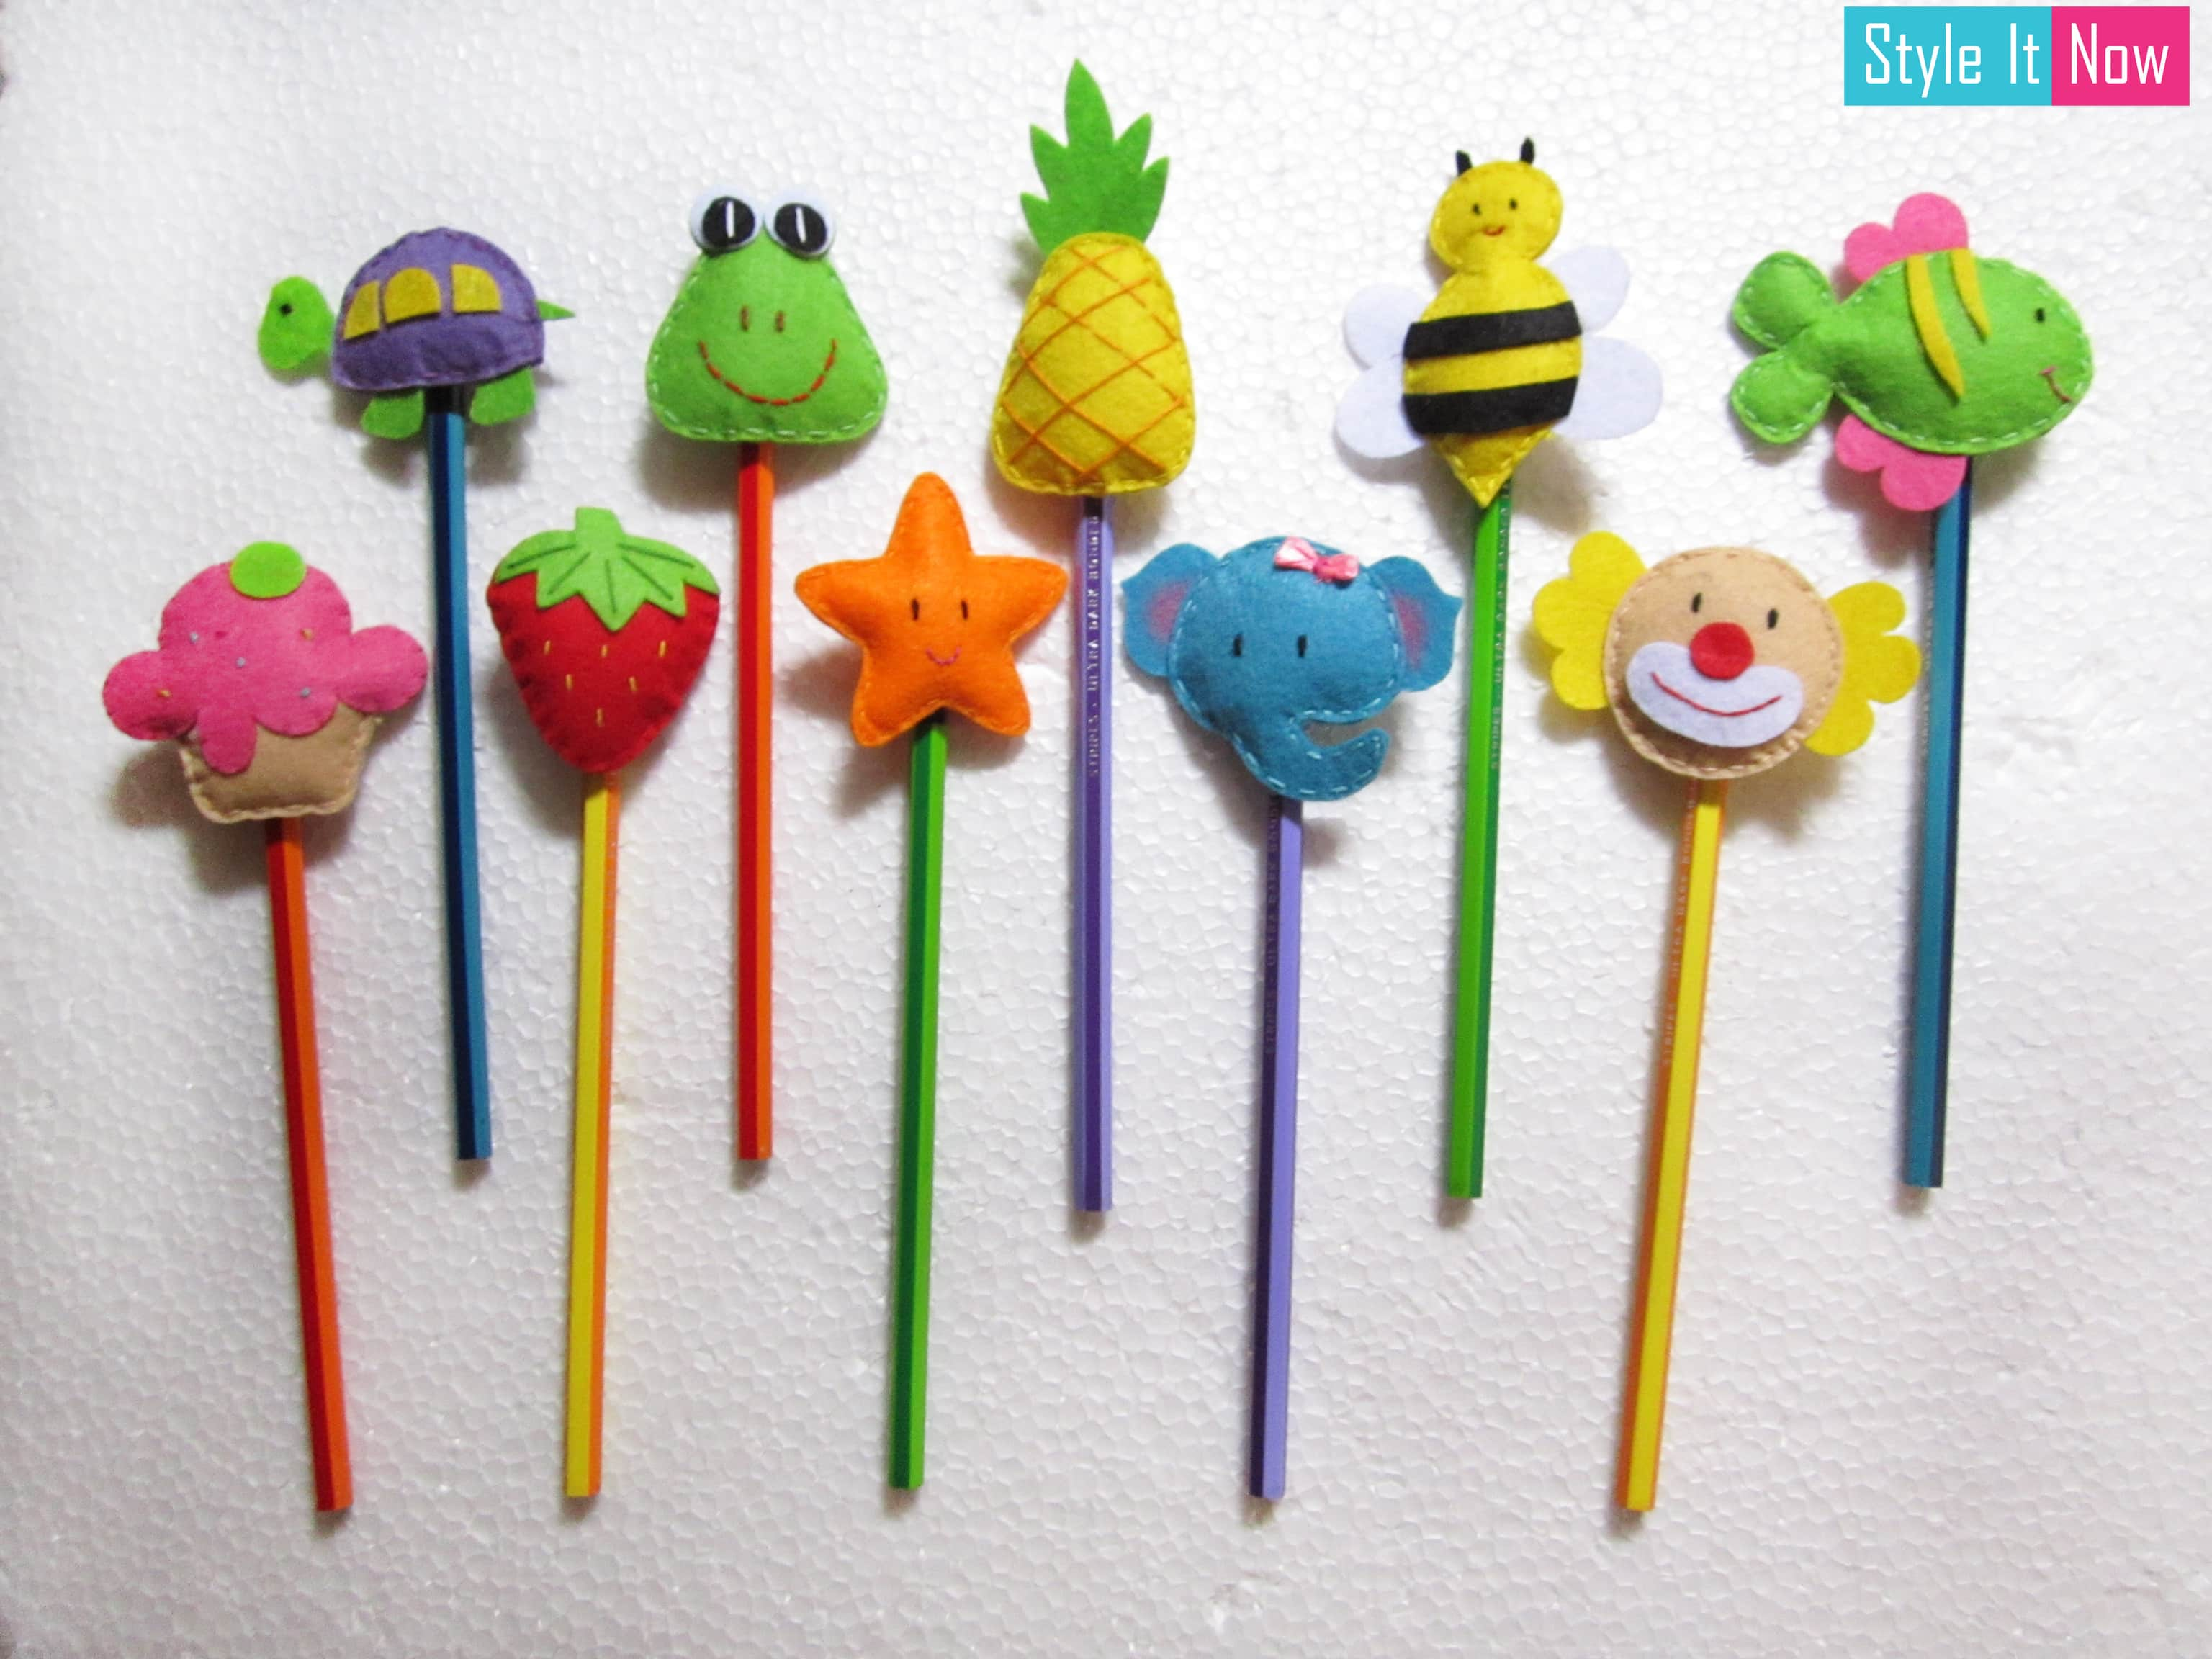 Felt Pencil Toppers Set Of 3 Style It Now